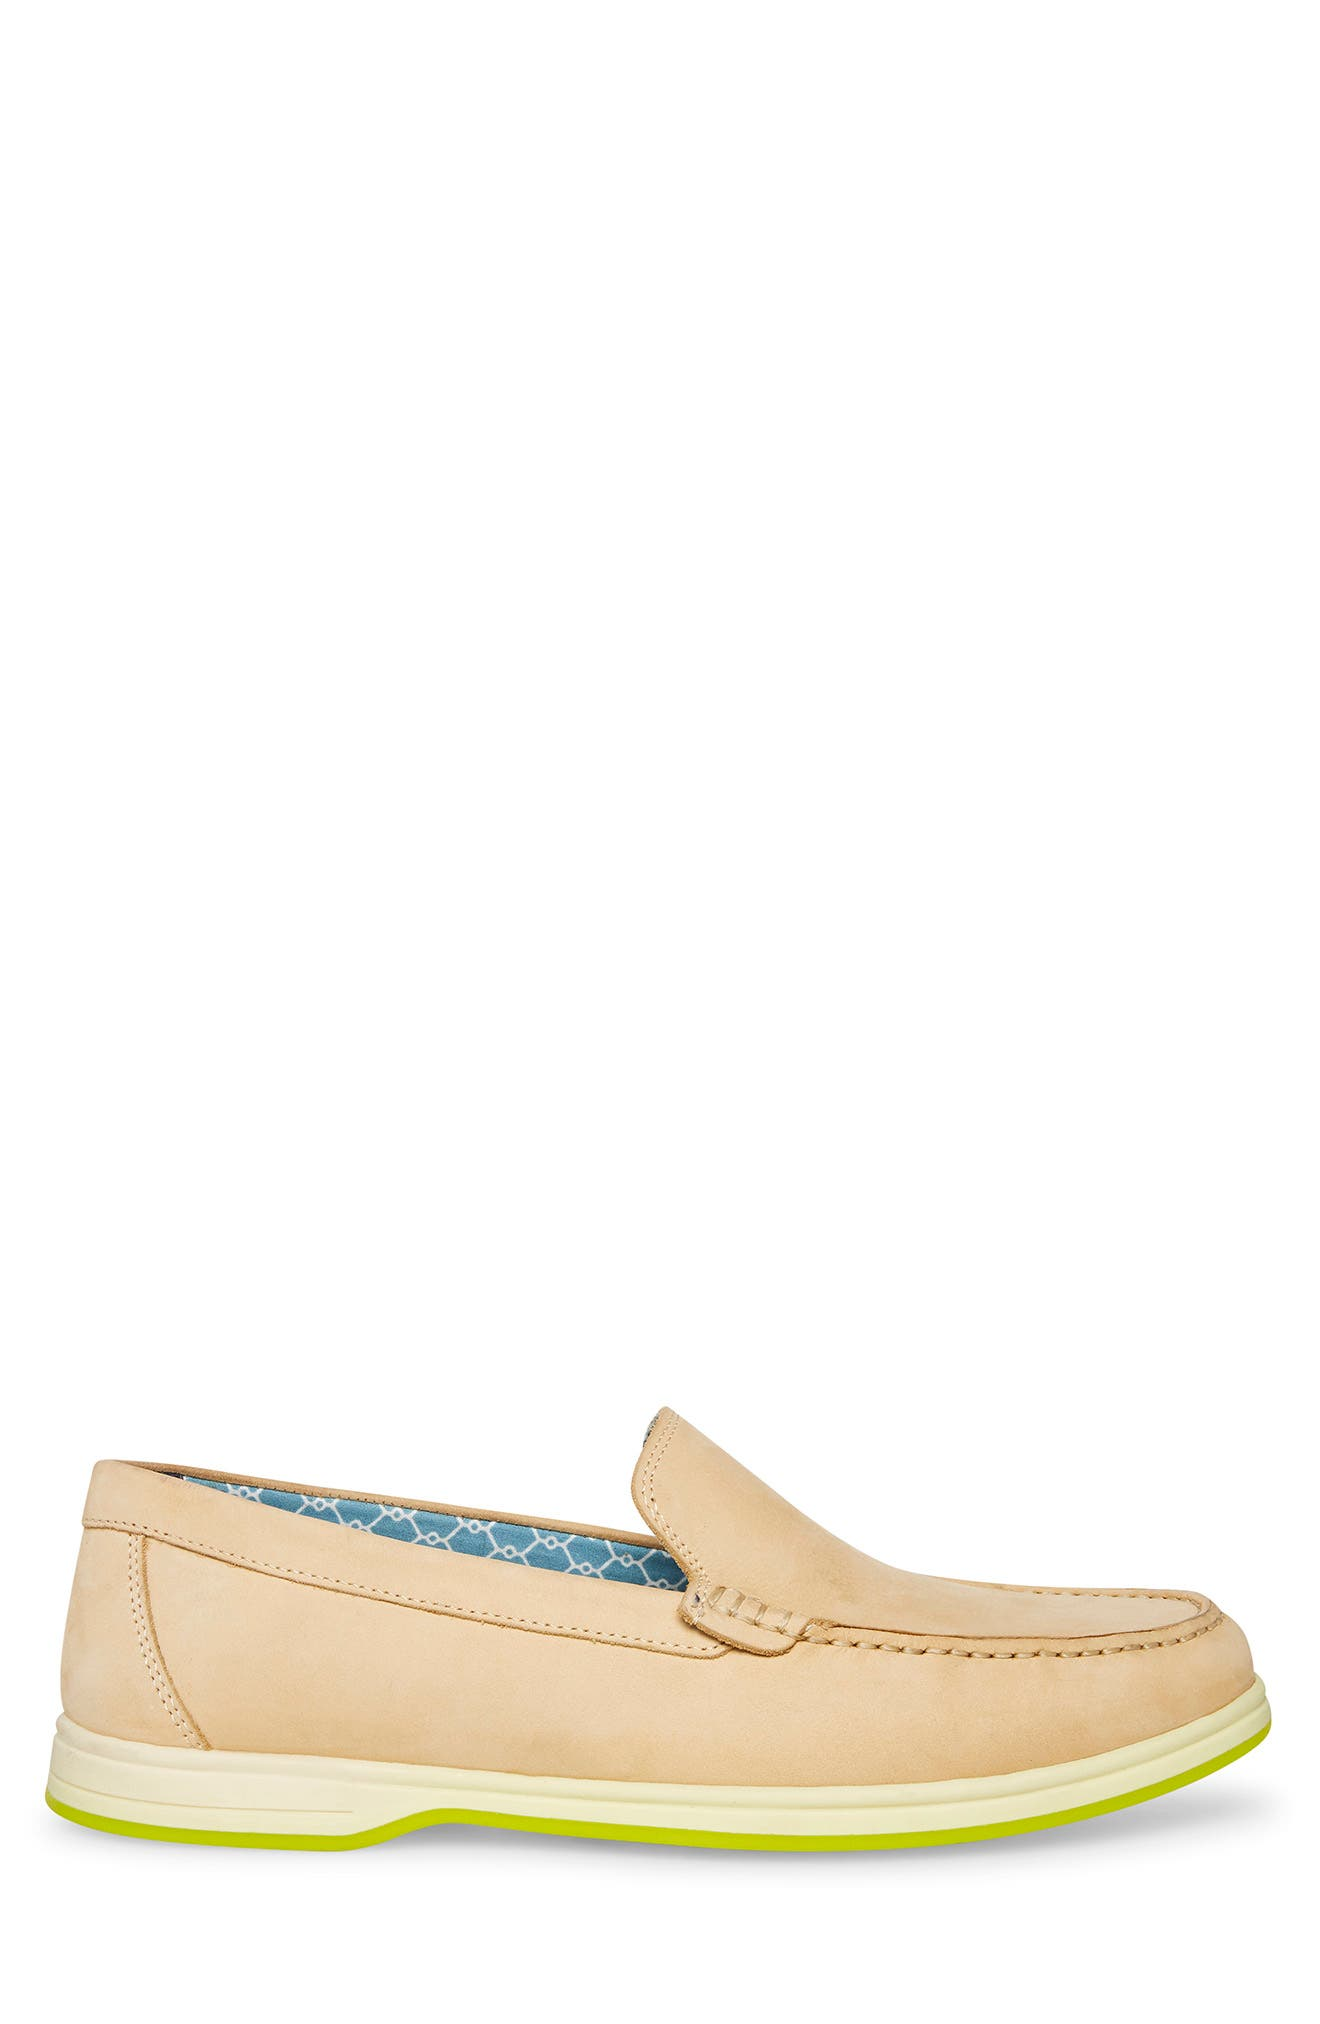 Image of Steve Madden Suede Slip-On Loafer